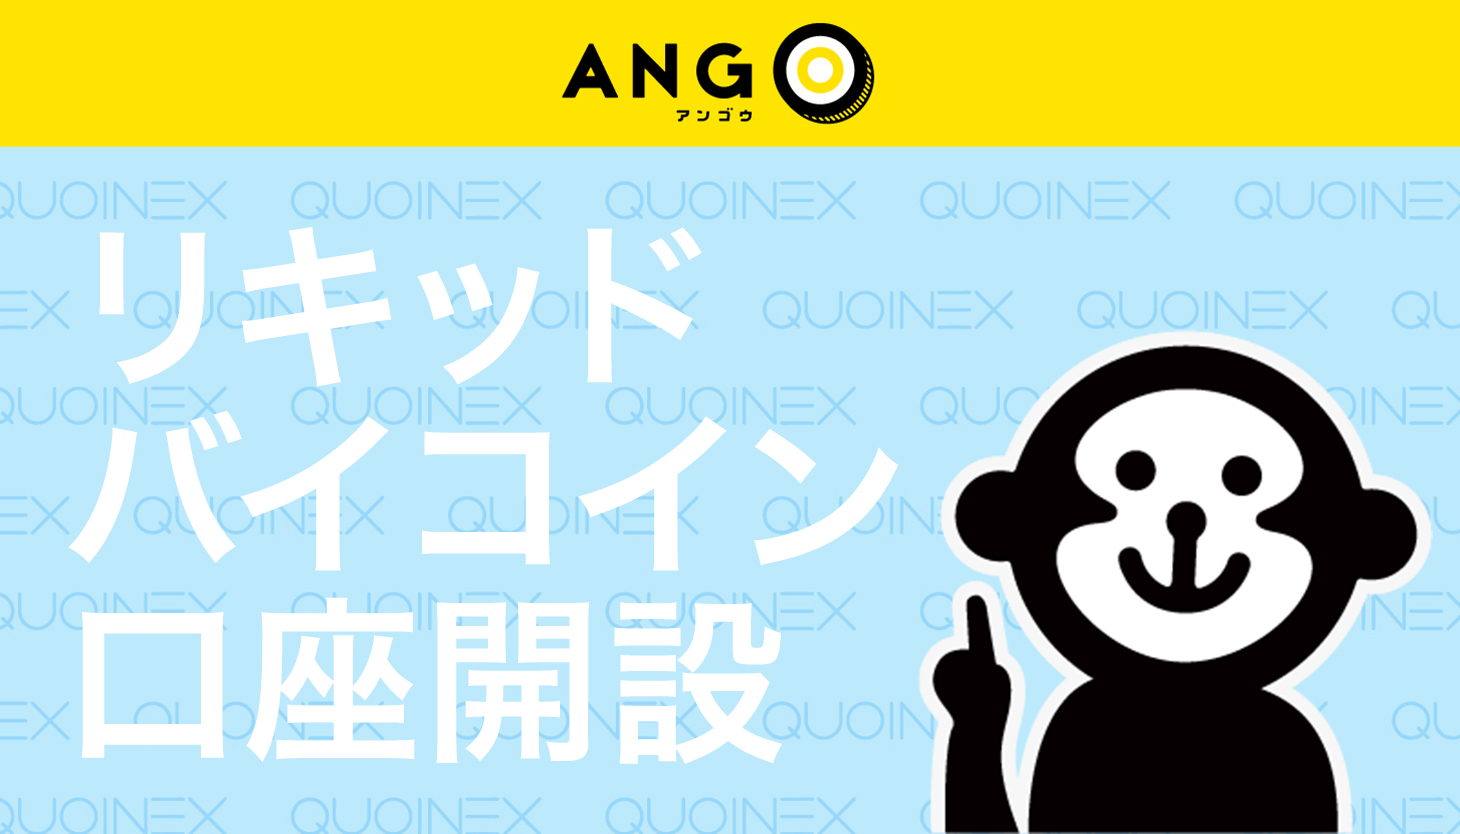 Liquid by Quoine(リキッドバイコイン)口座開設完了までの全5ステップを実演で解説!